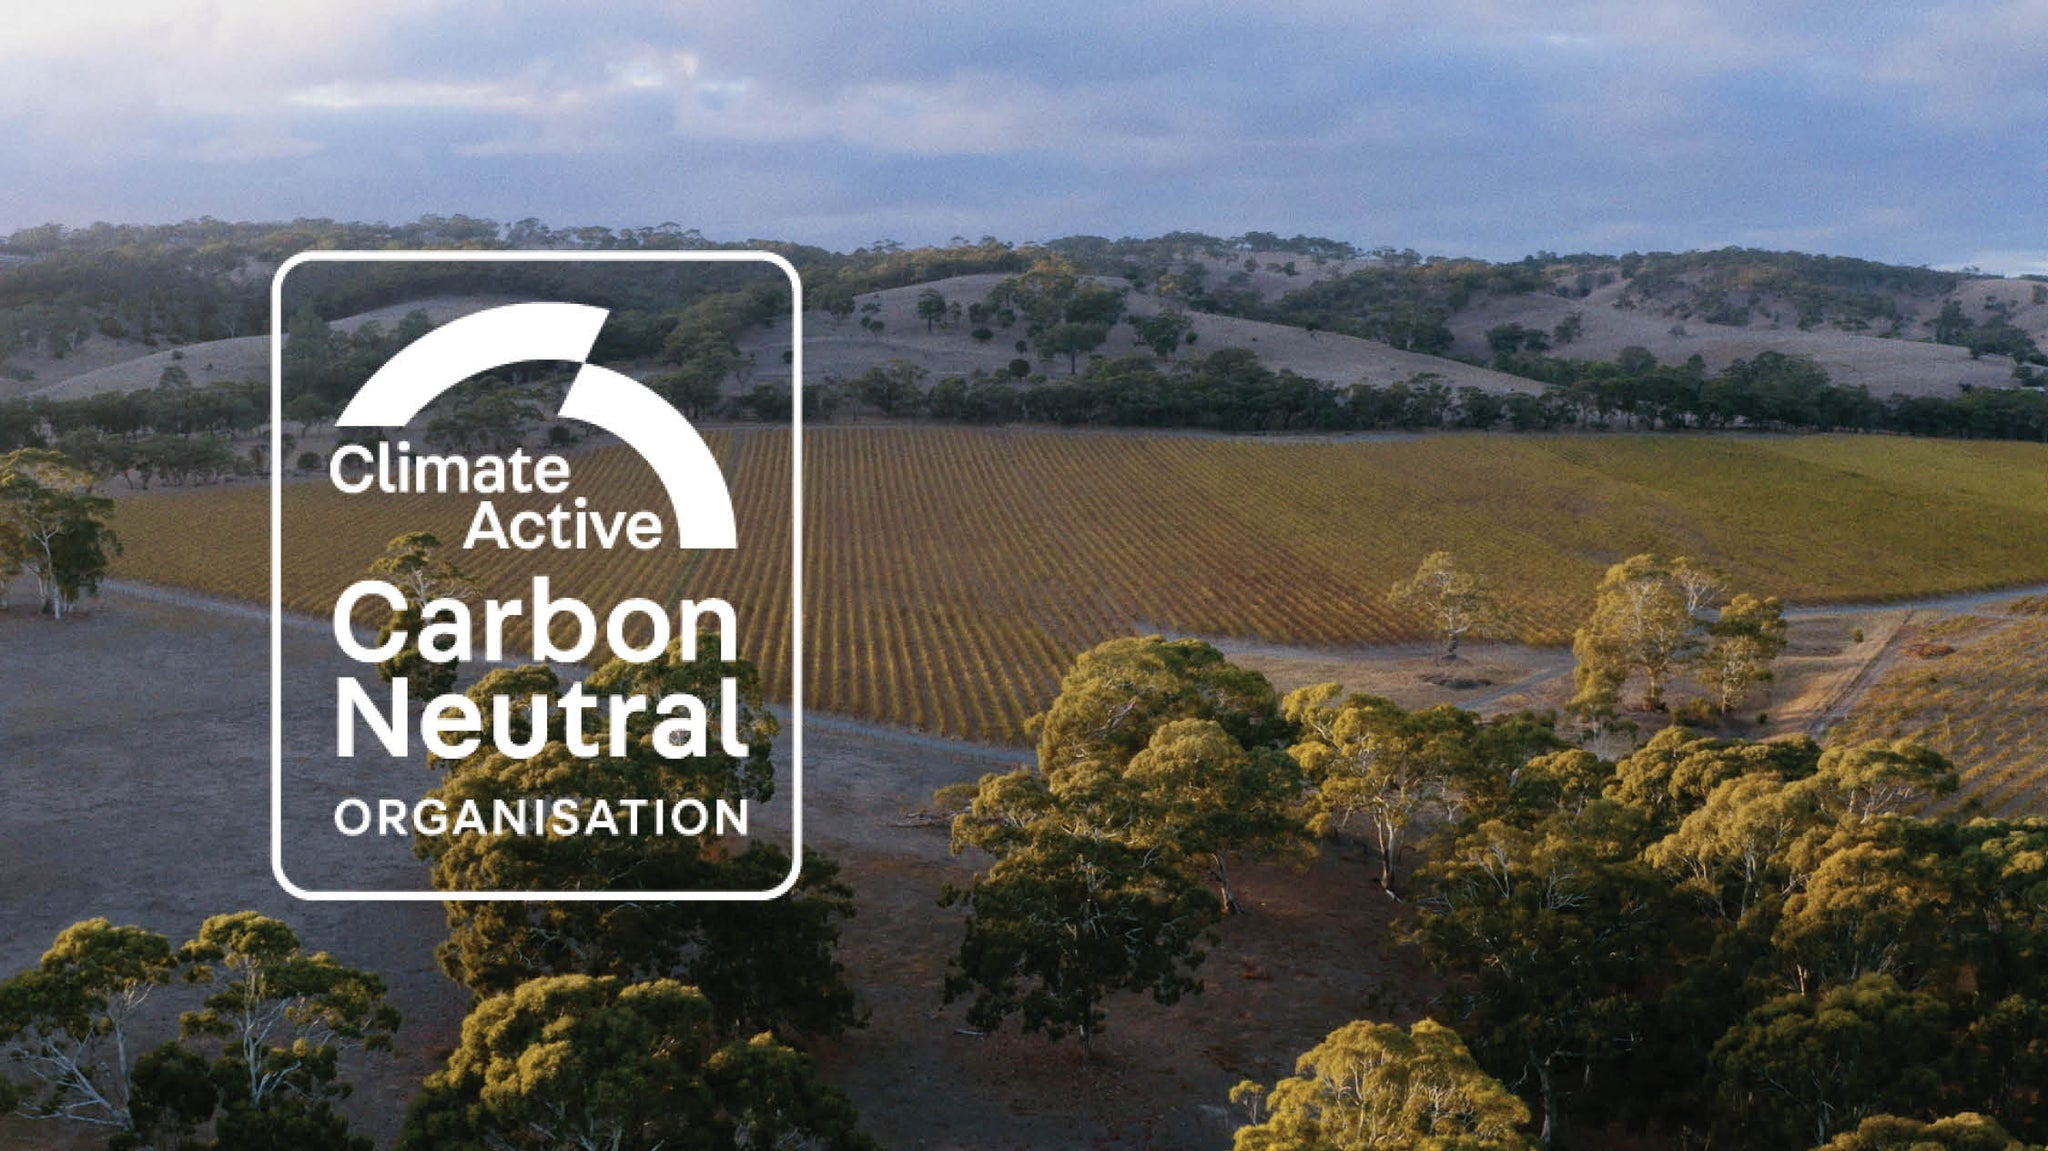 Climate Active Organisation